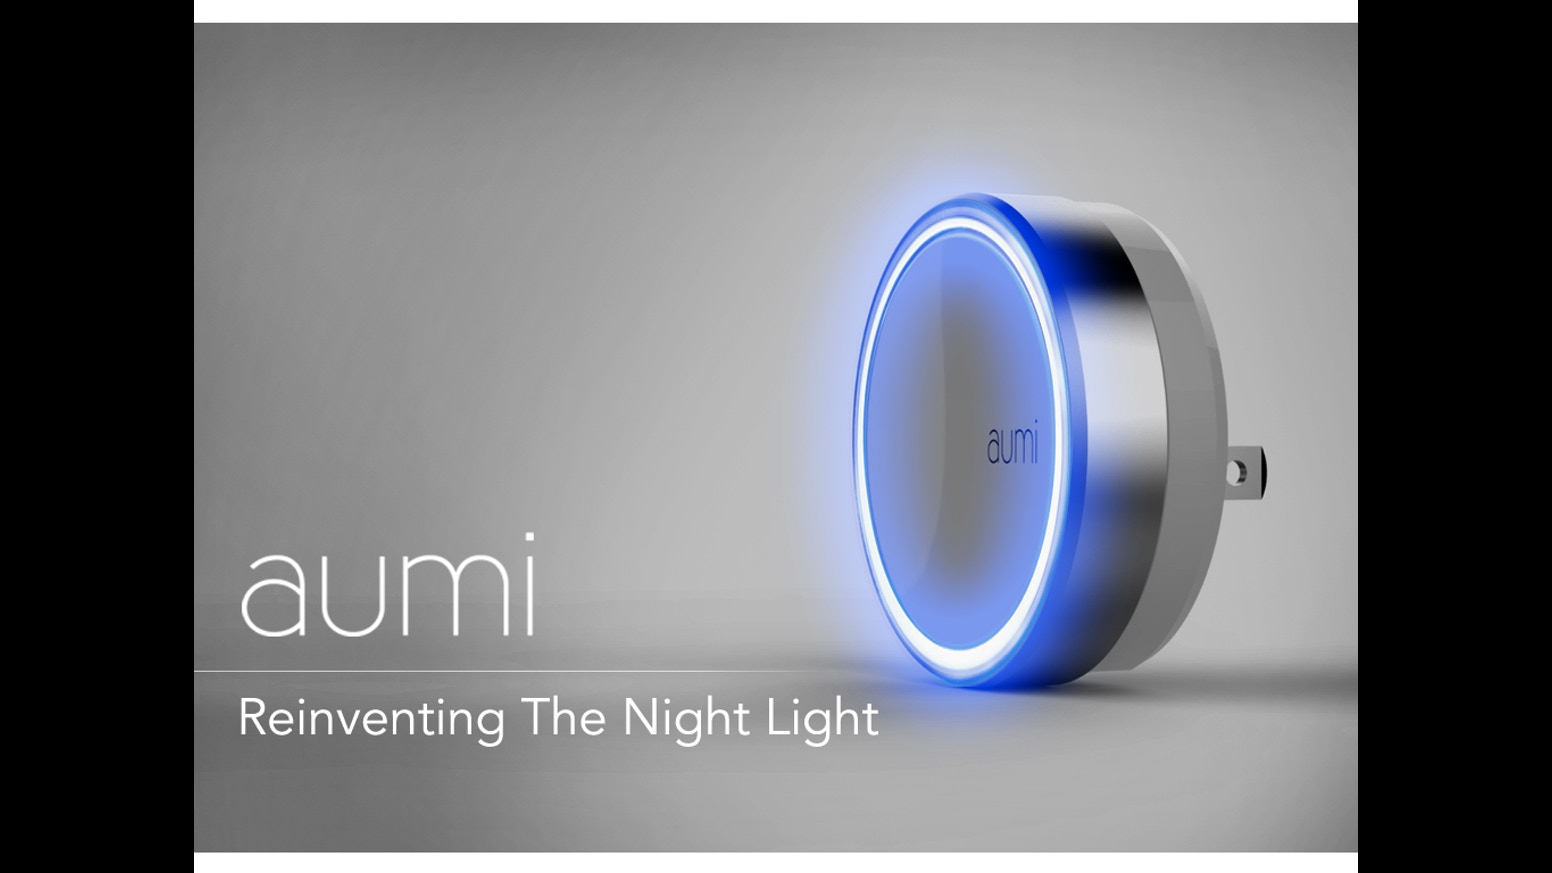 Led night light south africa - Aumi Is A Bluetooth Enabled Multi Color Rechargeable Led Night Light That You